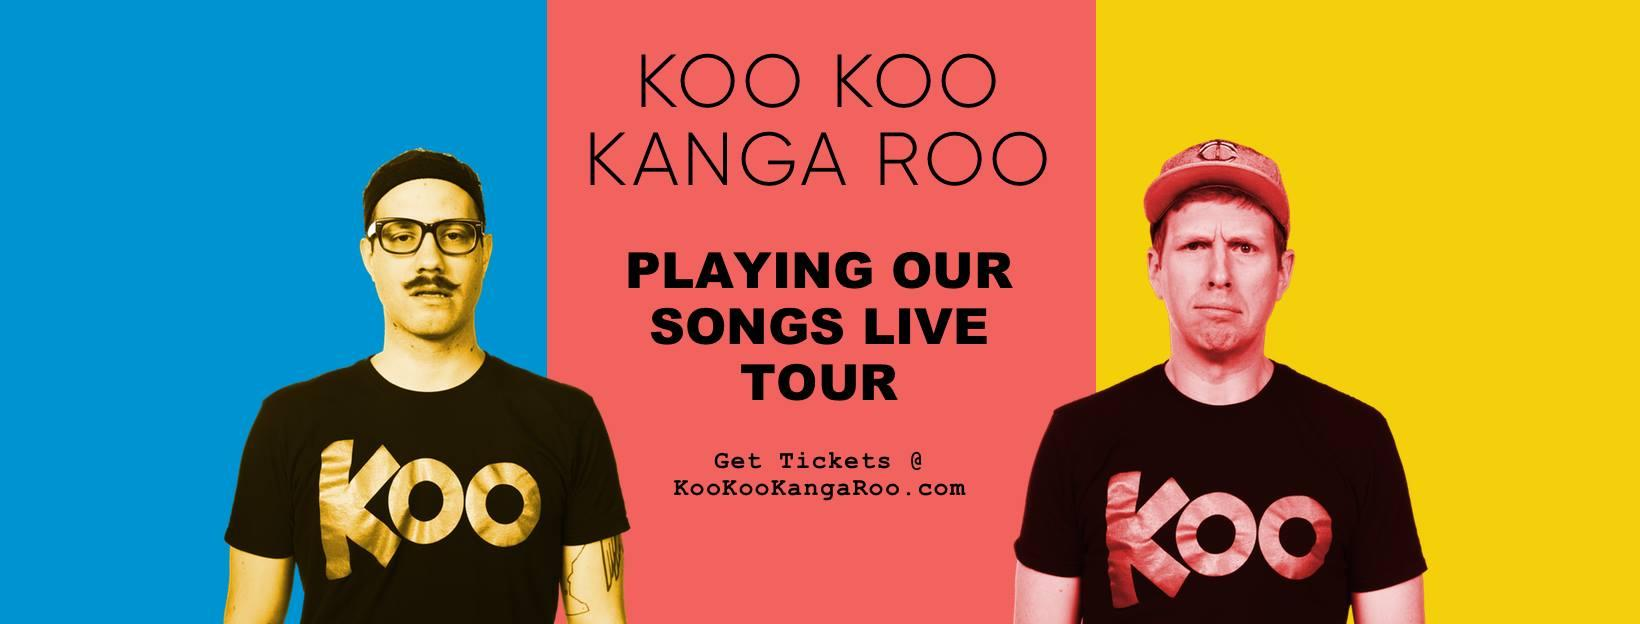 Koo Koo Kanga Roo in Minneapolis, MN 21+ Show | Minneapolis, MN | Kitty Cat Klub | December 9, 2017